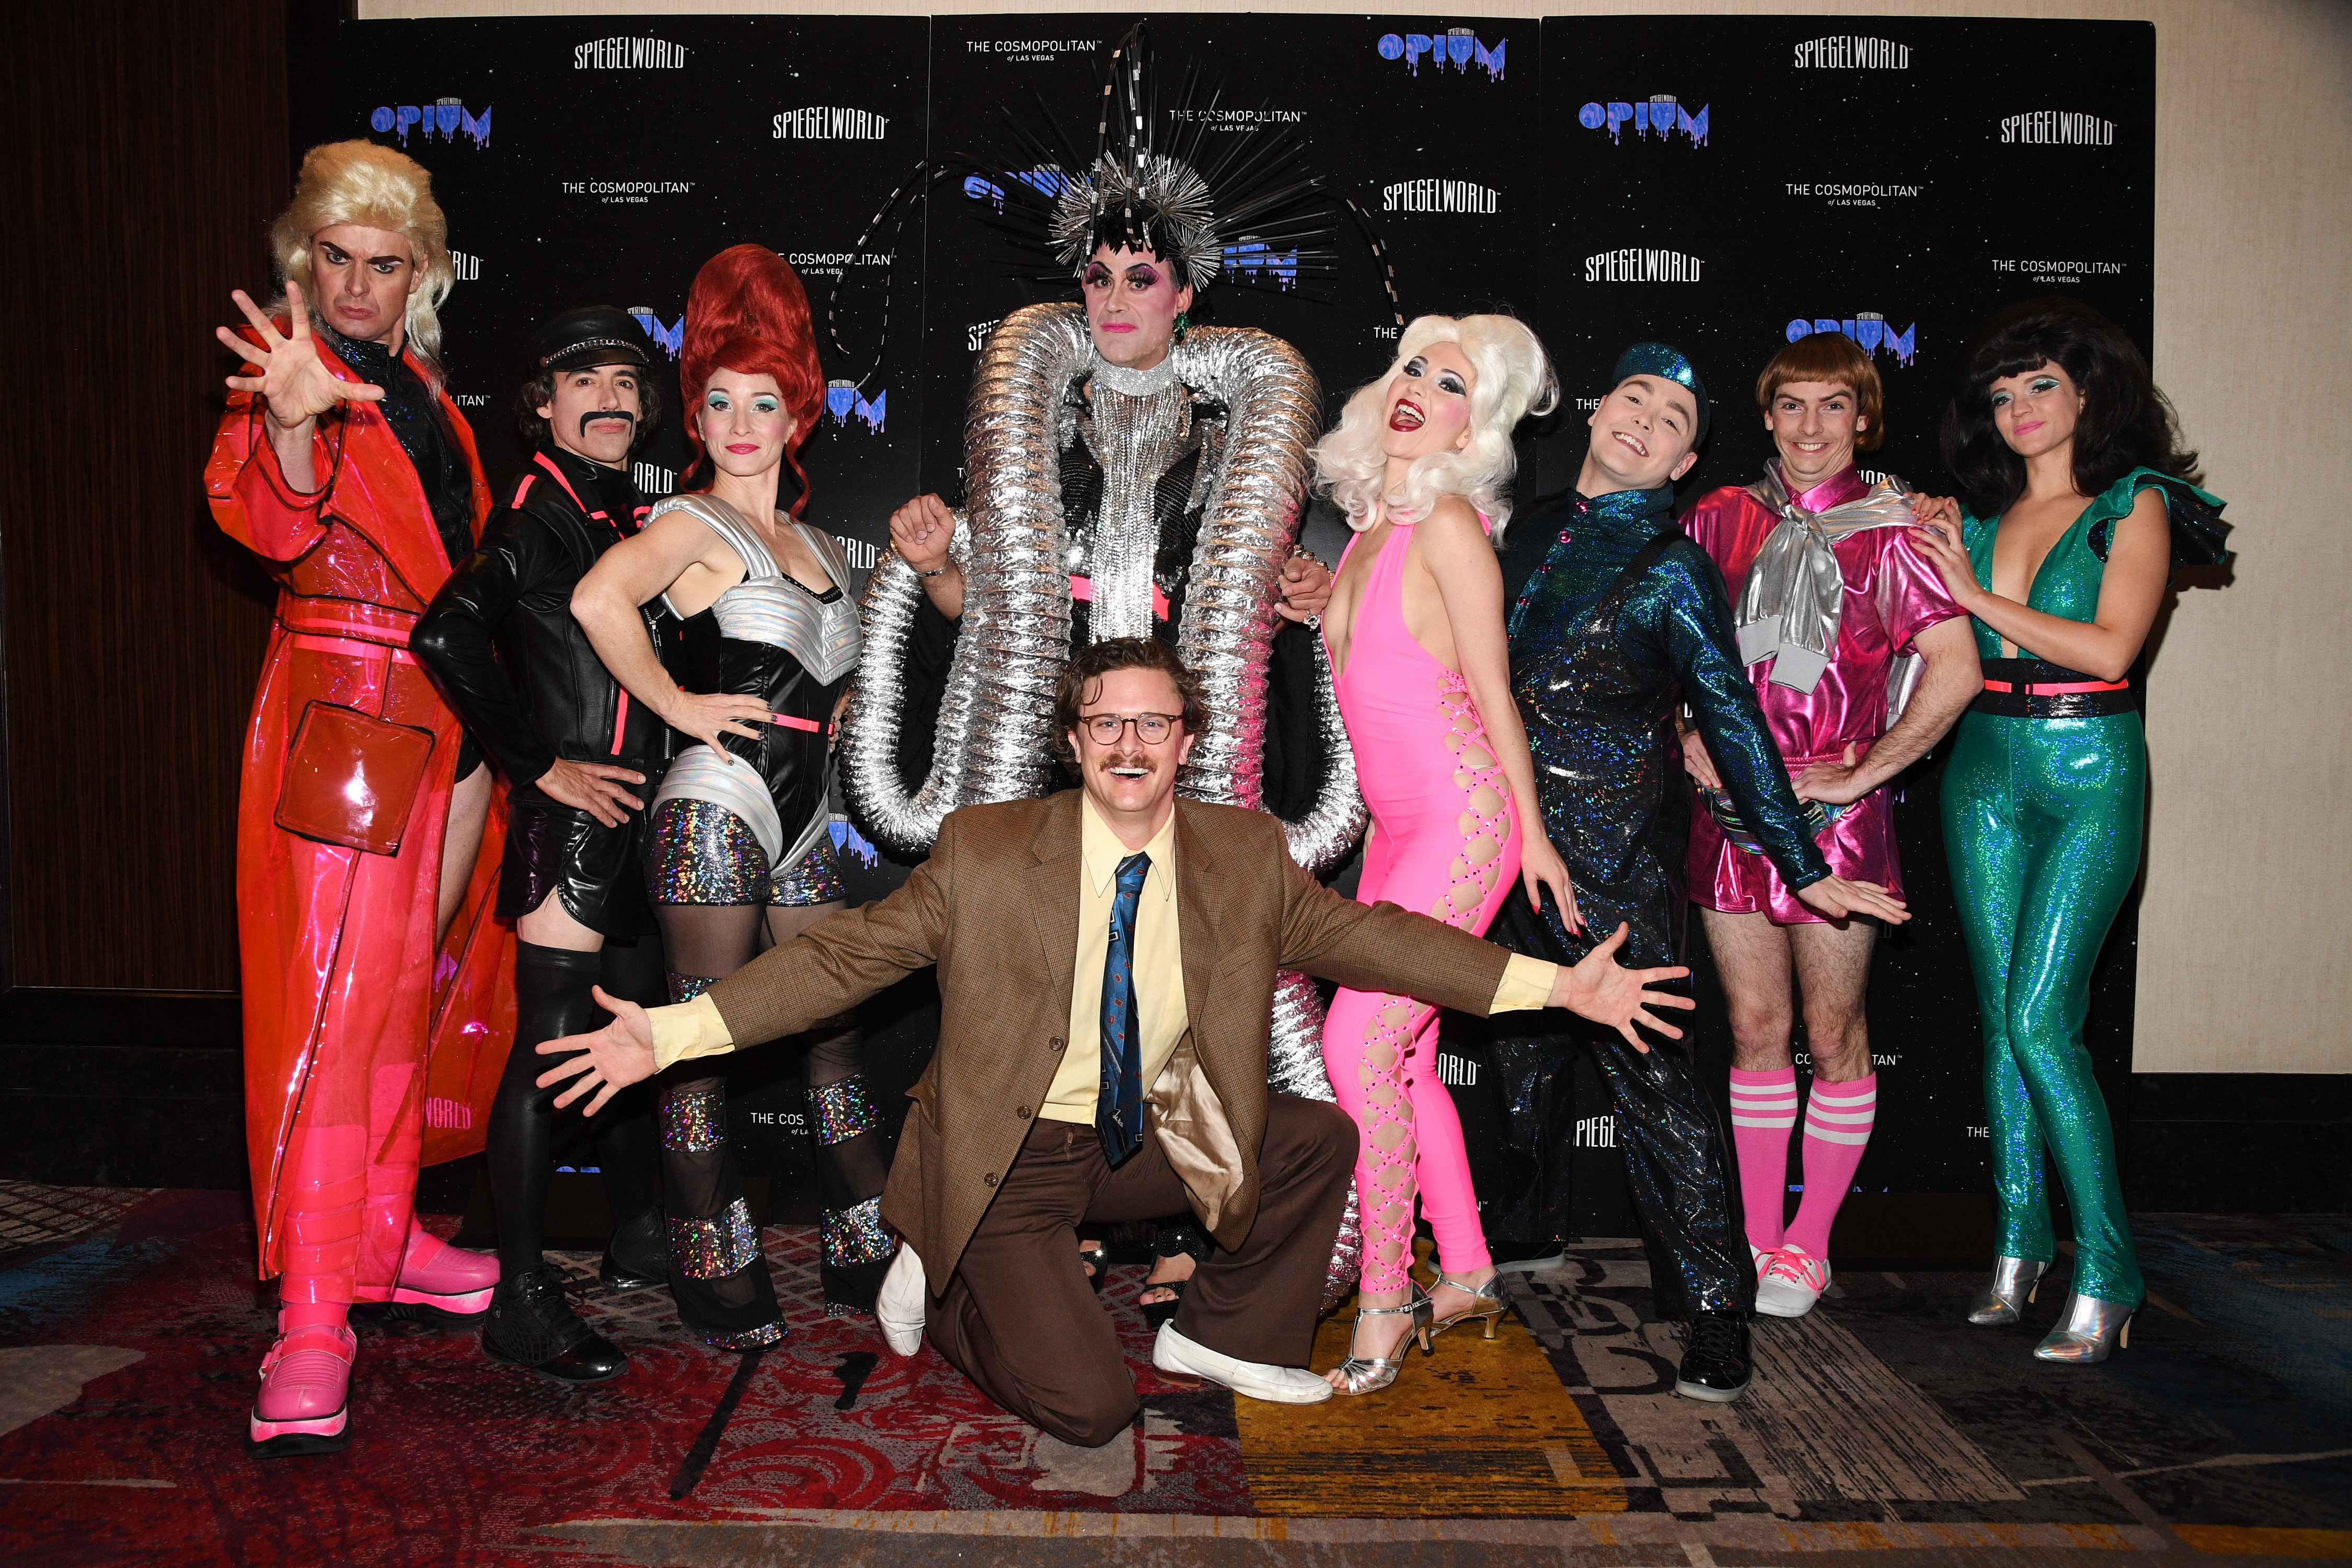 OPIUM Show Promoter Harry M. Howie with the cast_credit Al Powers for Spiegelworld